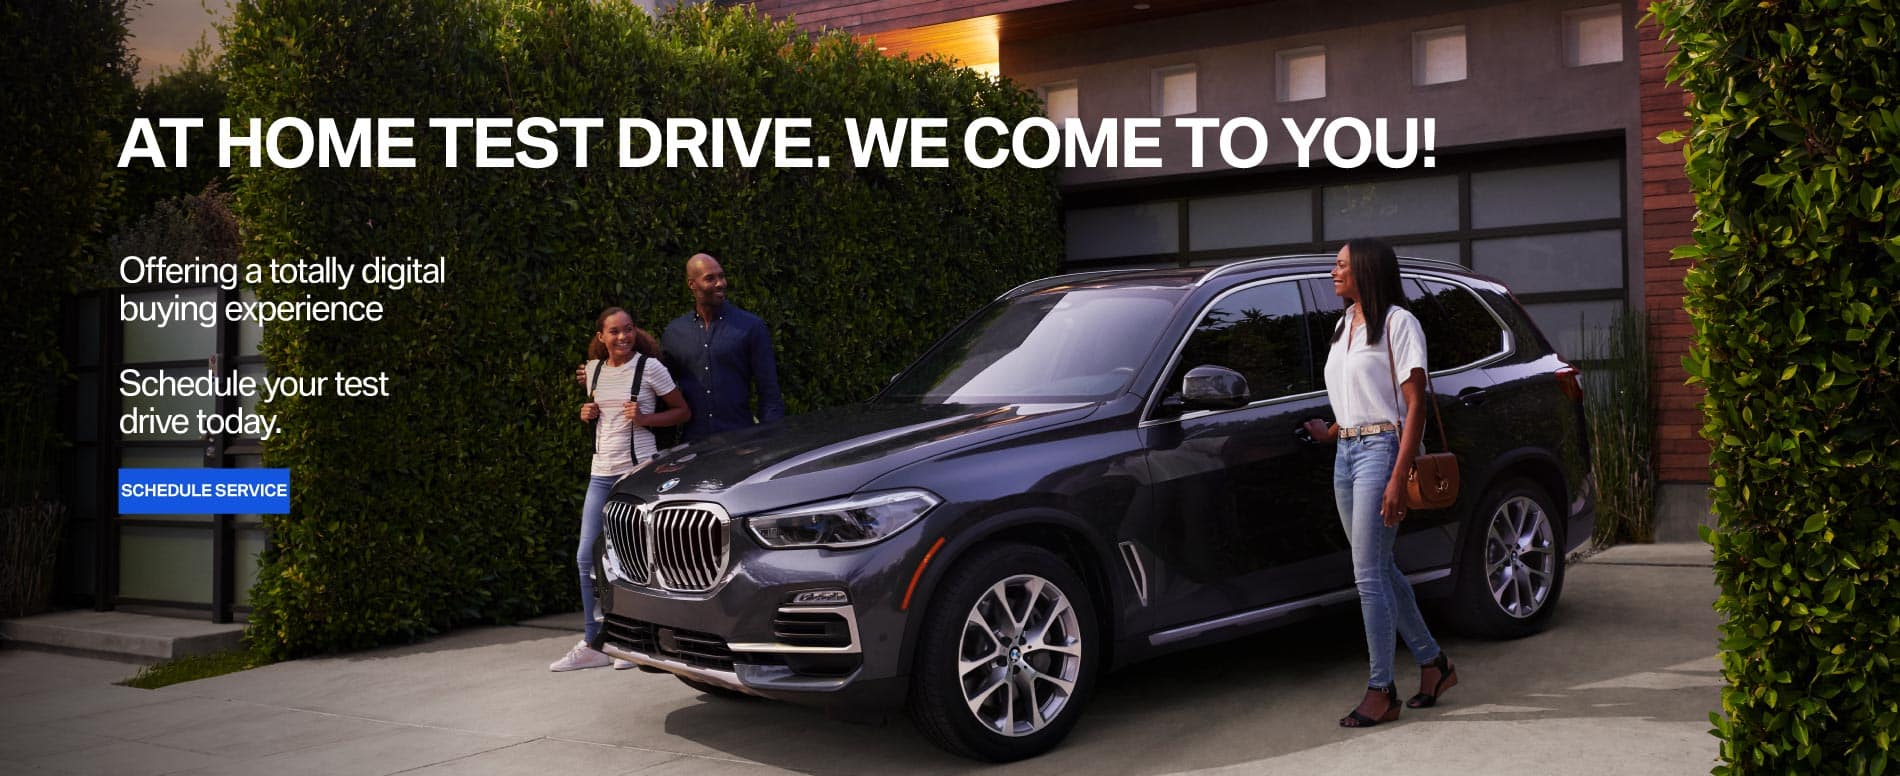 At home test drive. We come to you! Click here to schedule service.